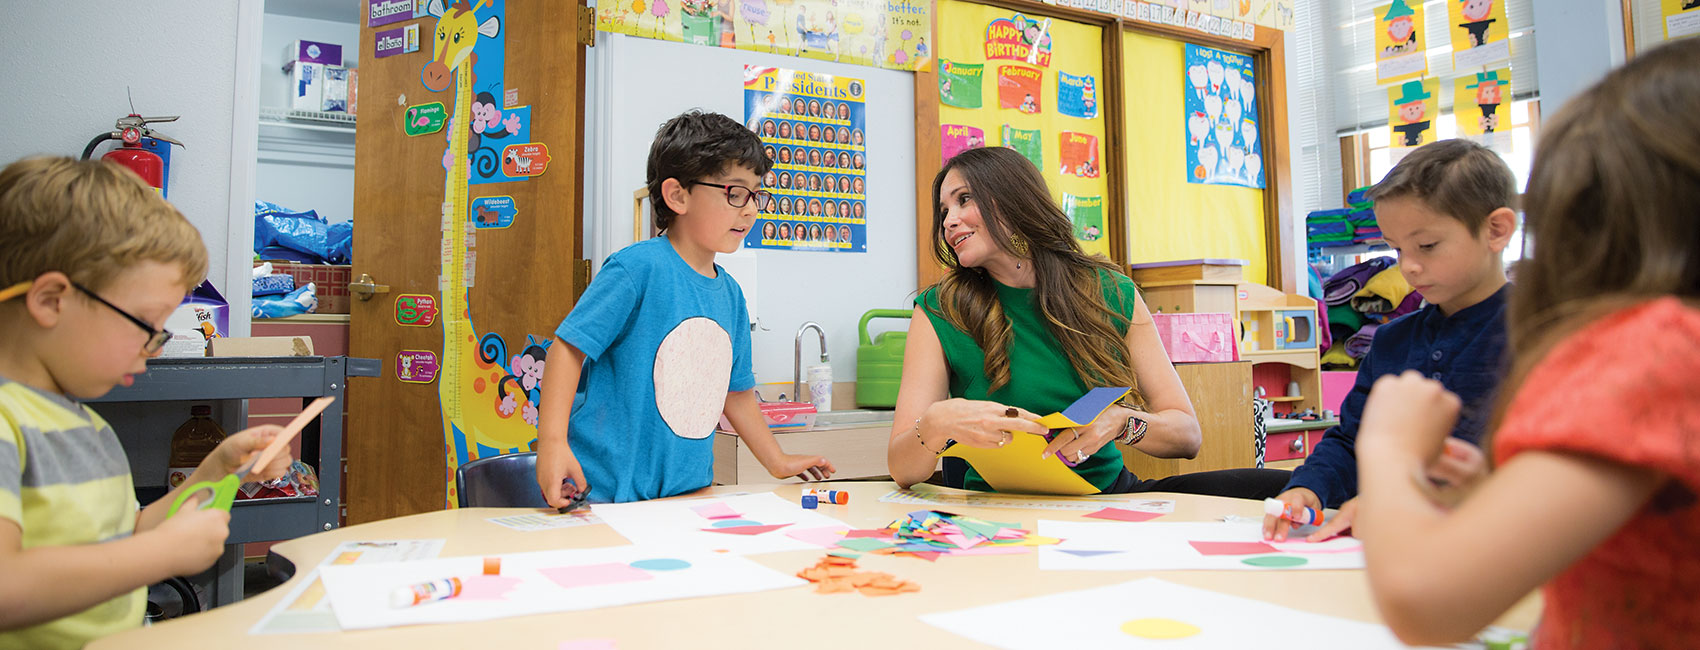 Elementary Education Ma Unm Online The University Of New Mexico